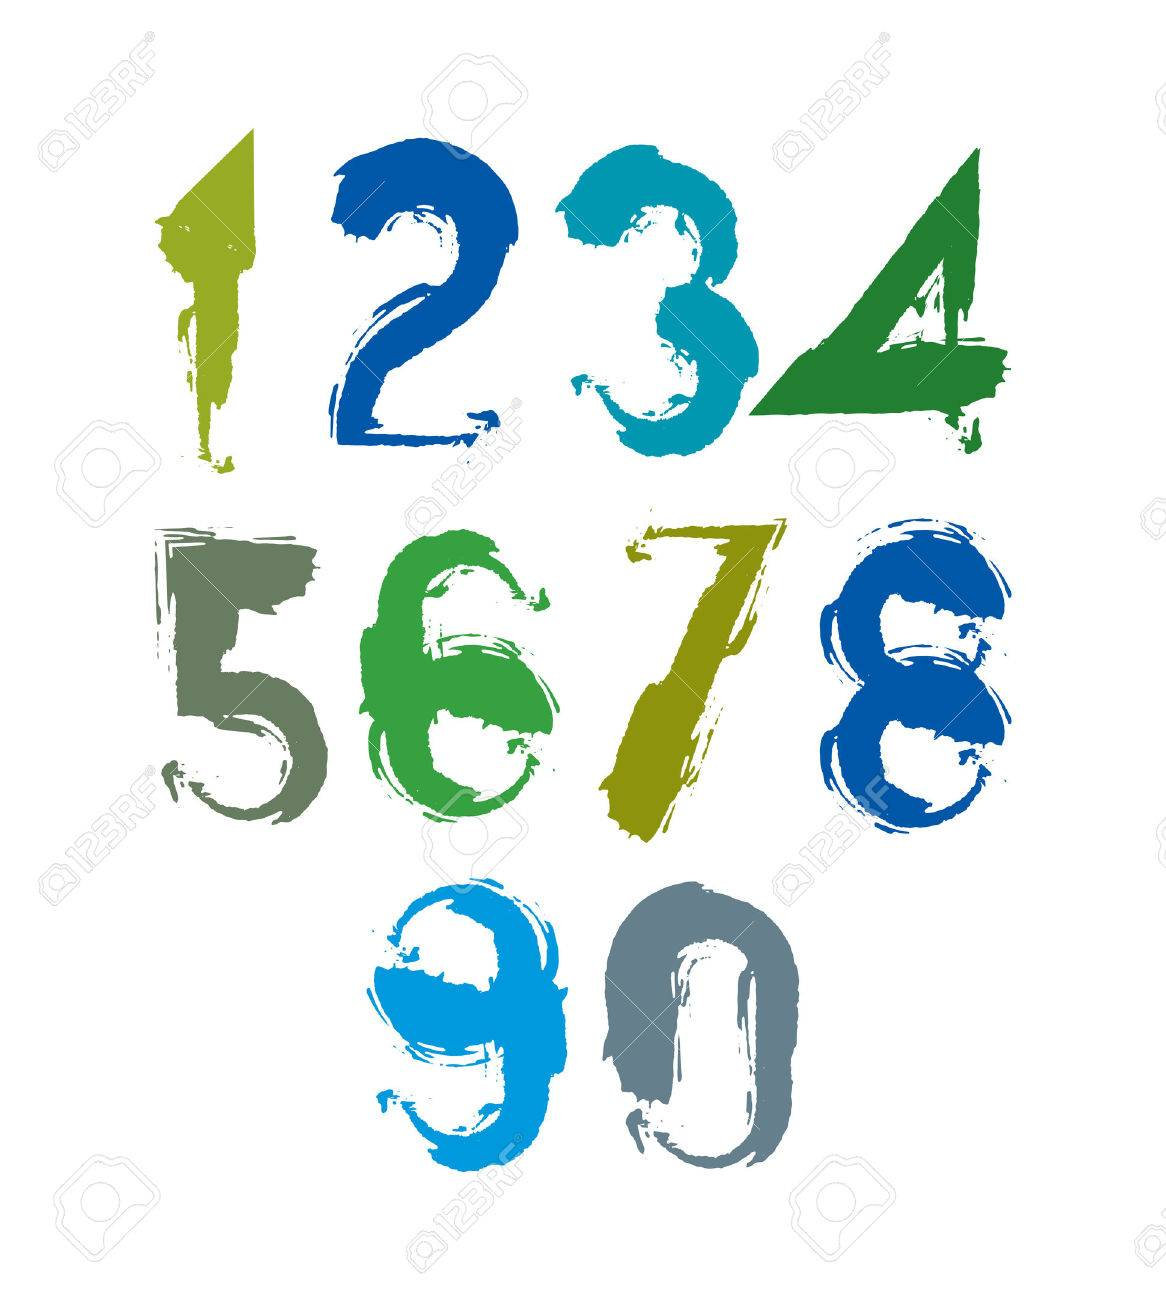 1166x1300 Multicolored Handwritten Numbers, Vector Doodle Brushed Figures